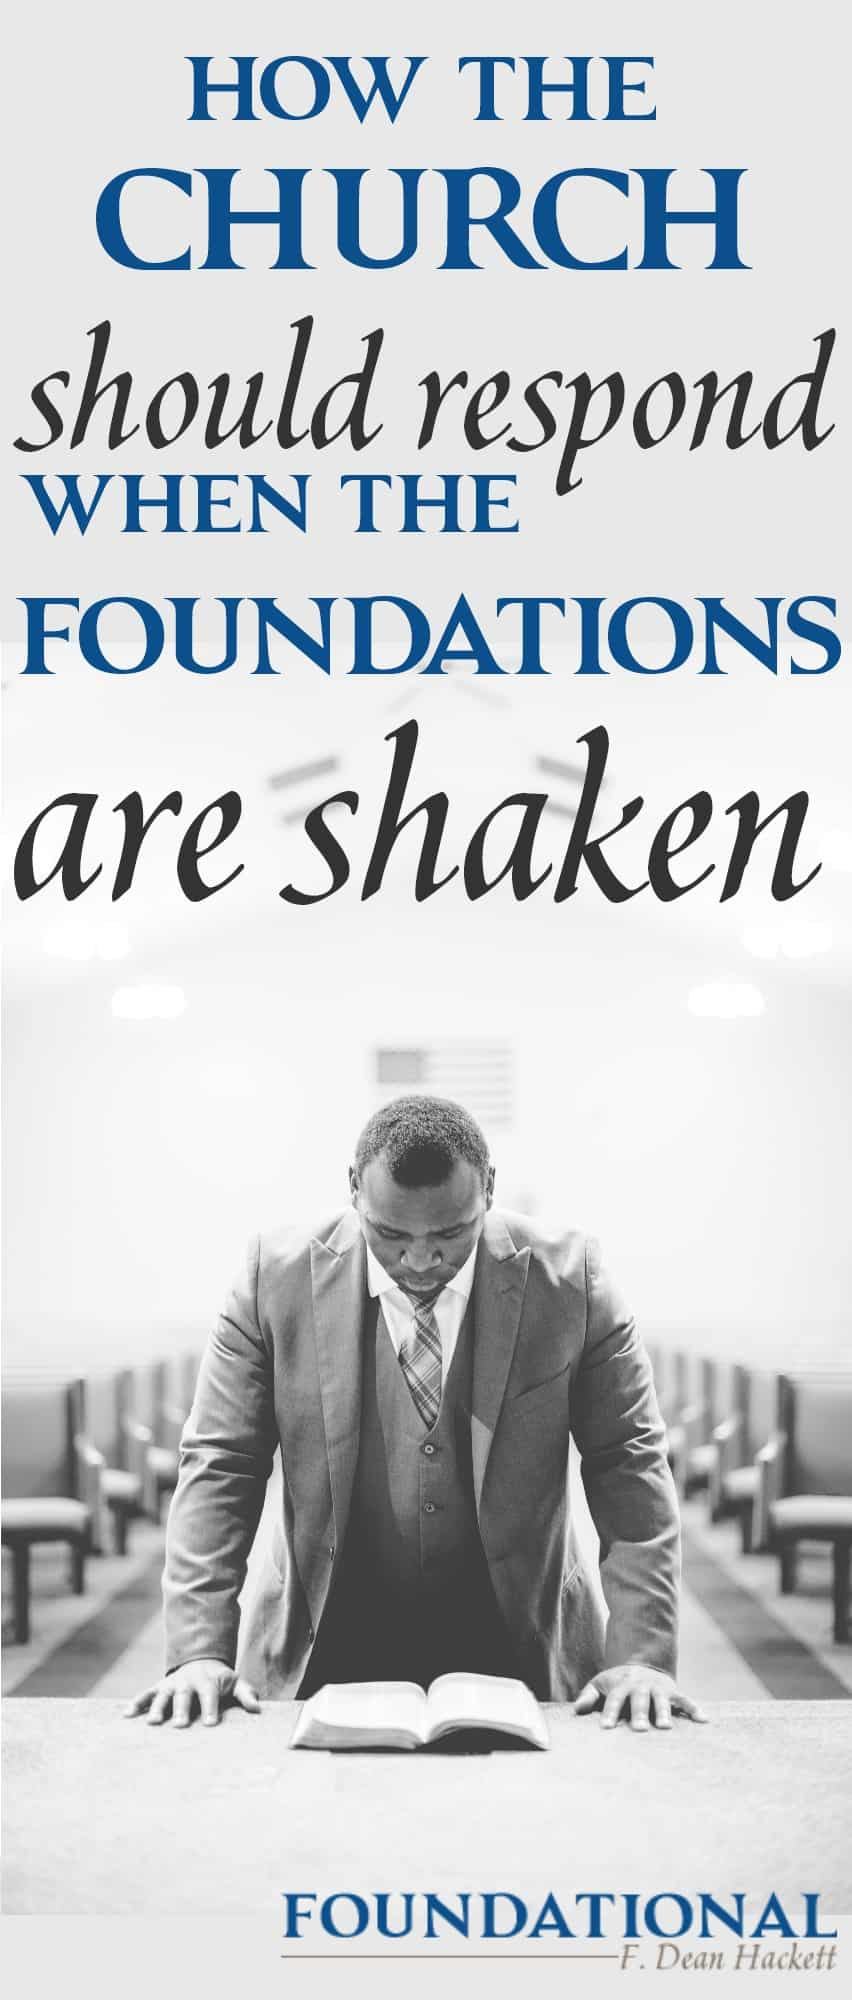 When the foundations are shaken or destroyed, the church has an opportunity to bring light and hope to the world. How has the church historically responded and how is that different from how she is responding today?